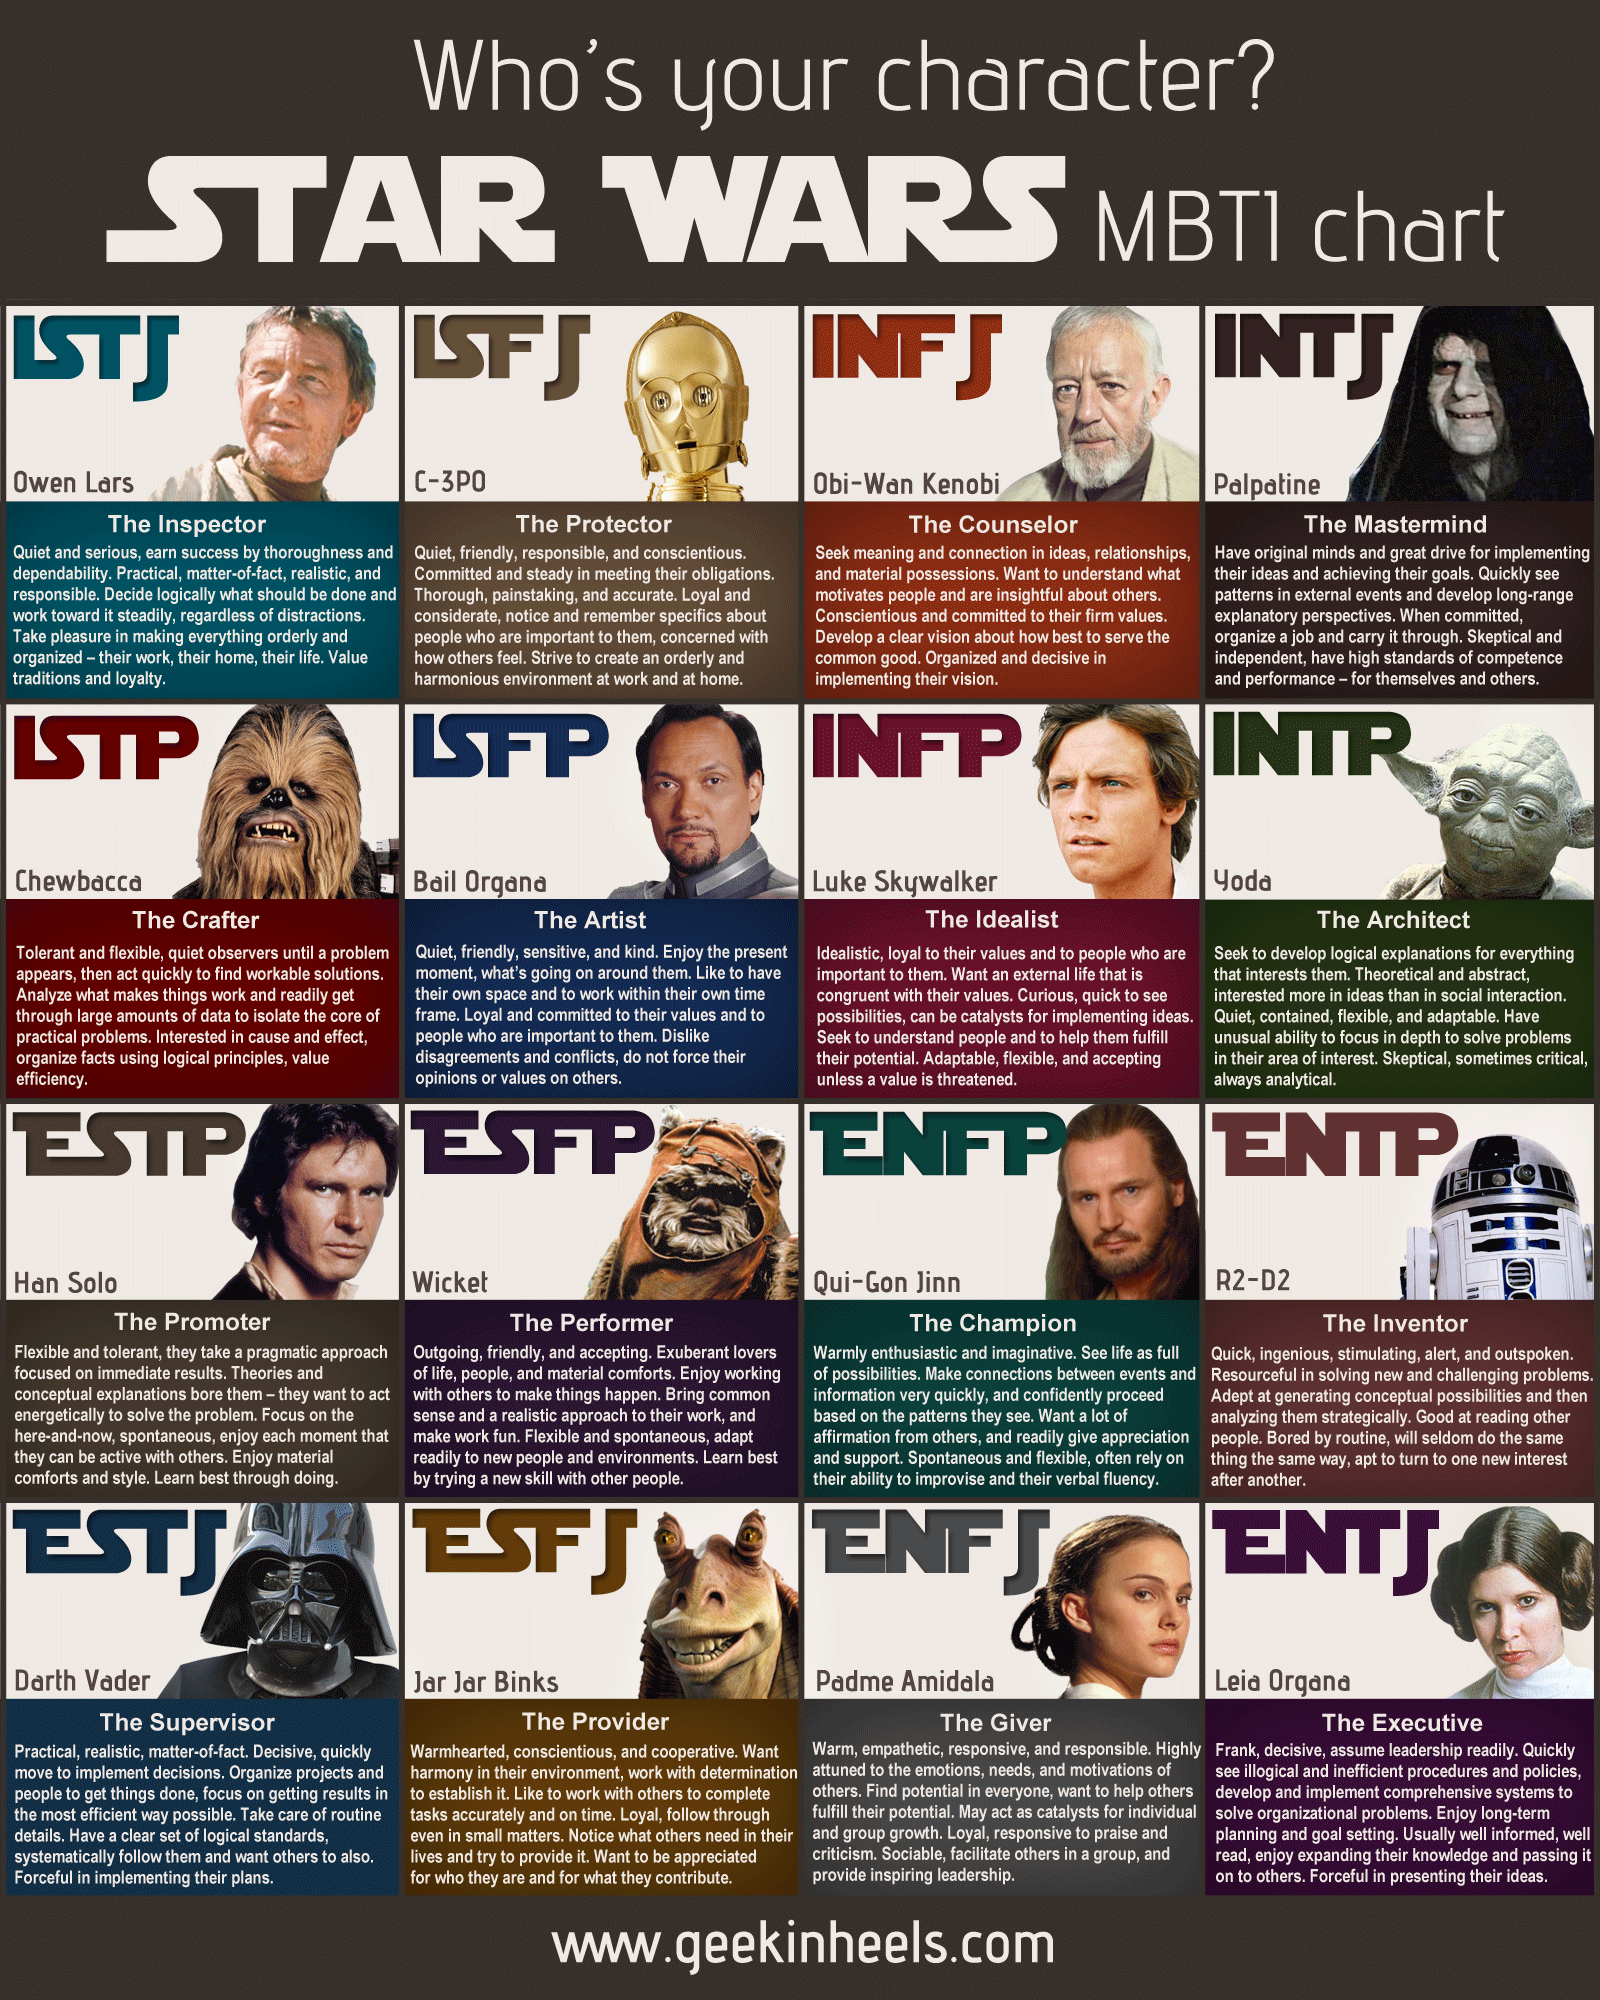 Star Wars characters by MBTI type.